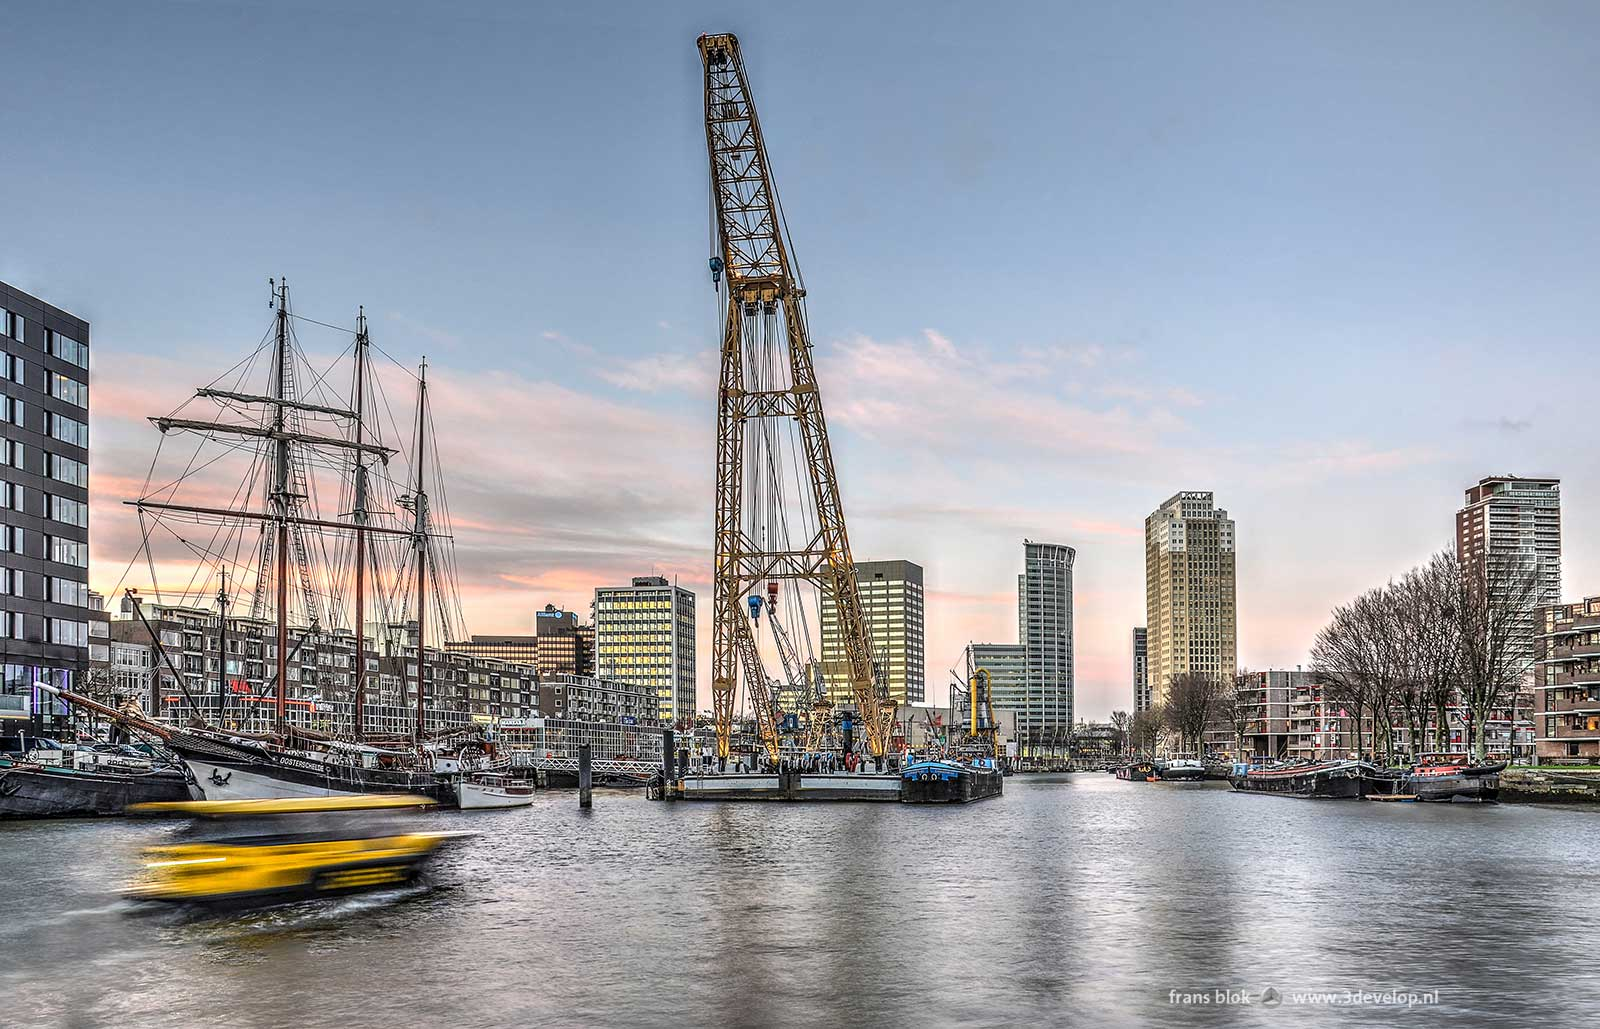 Leuve Harbour in Rotterdam not long before sunset, featuring a water taxi, a floating crane and a three-master